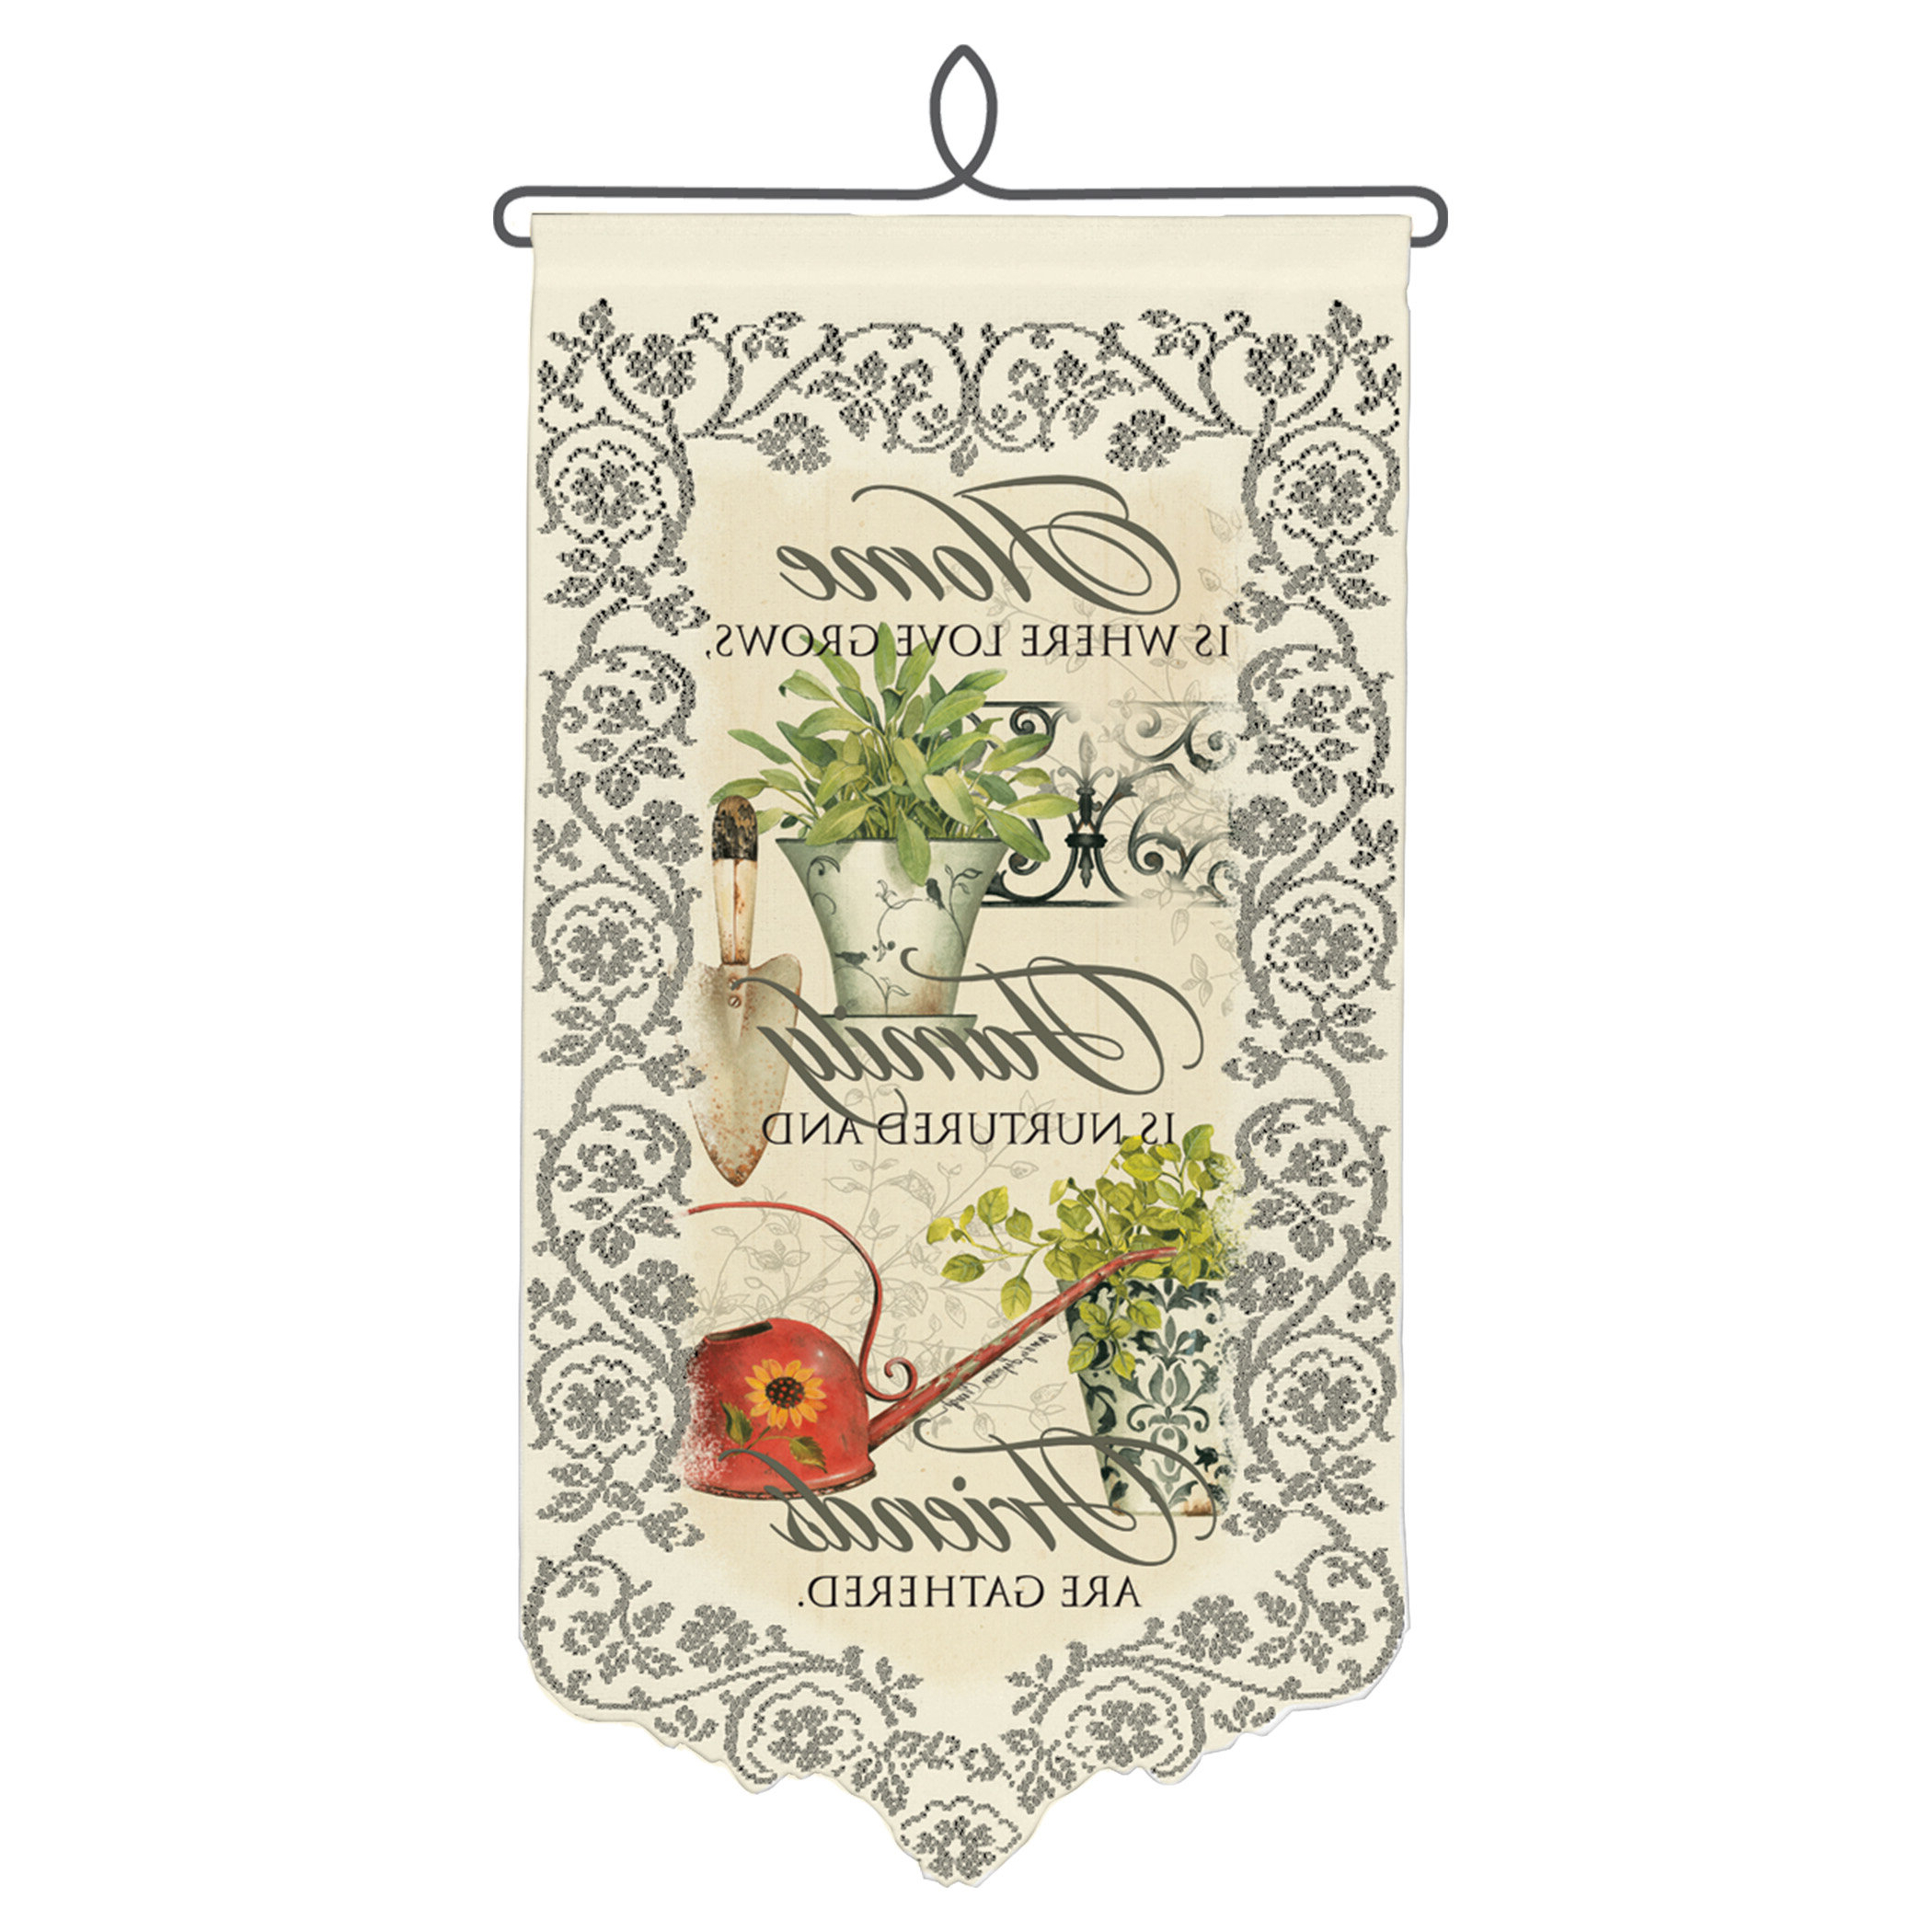 Blended Fabric Autumn Tranquility Verse Wall Hangings Pertaining To Widely Used Spiritual & Inspirational Tapestries You'll Love In (View 12 of 20)